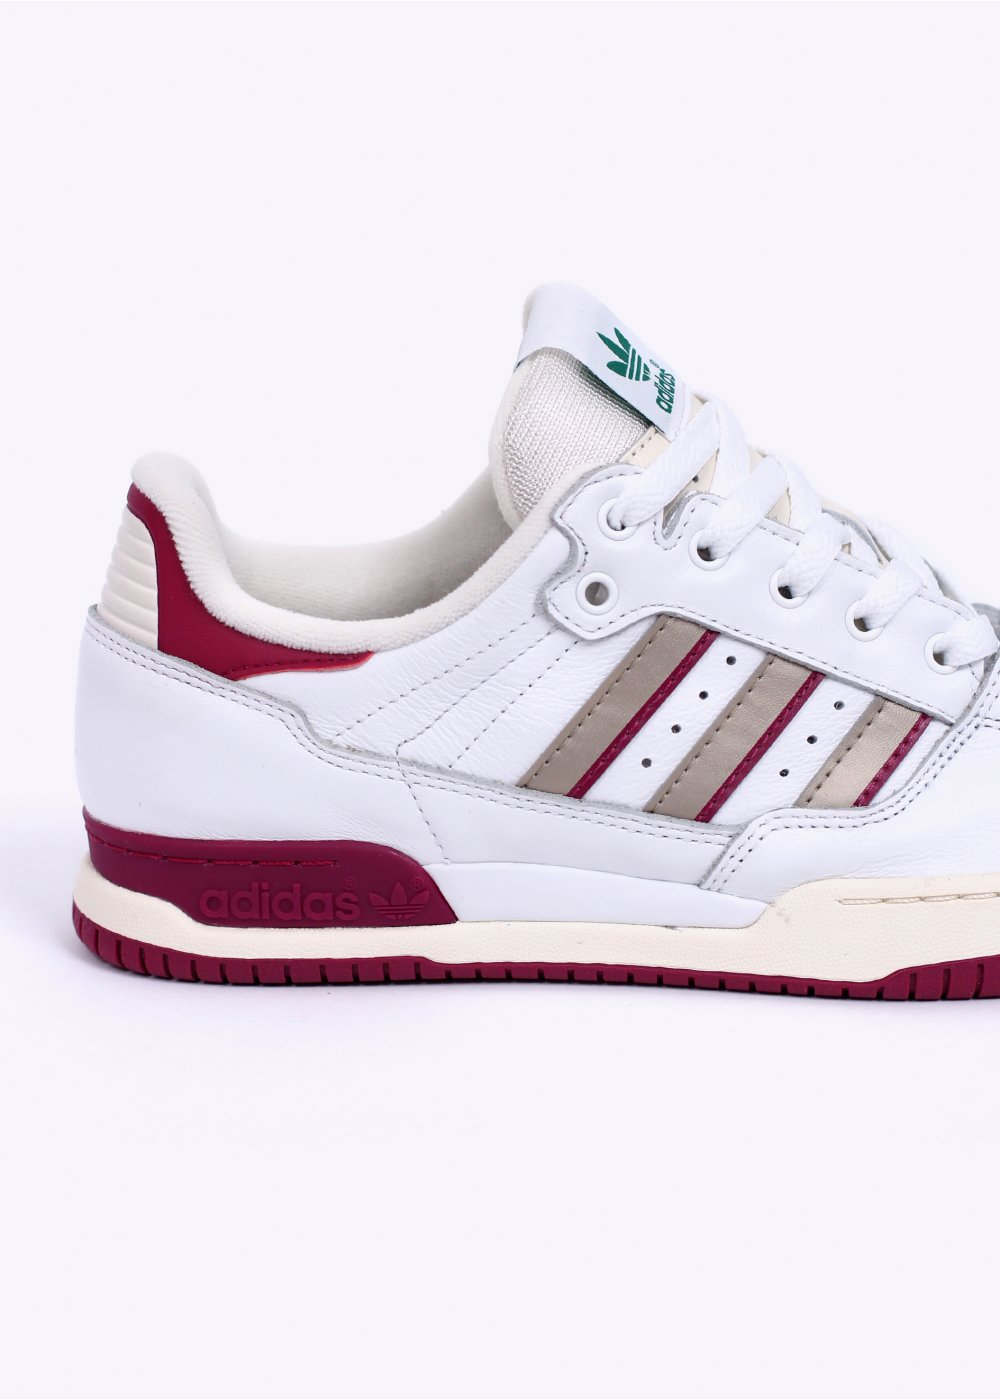 4ee7e44aae3f adidas Originals Tennis Super Trainers - White   Burgundy   Gold